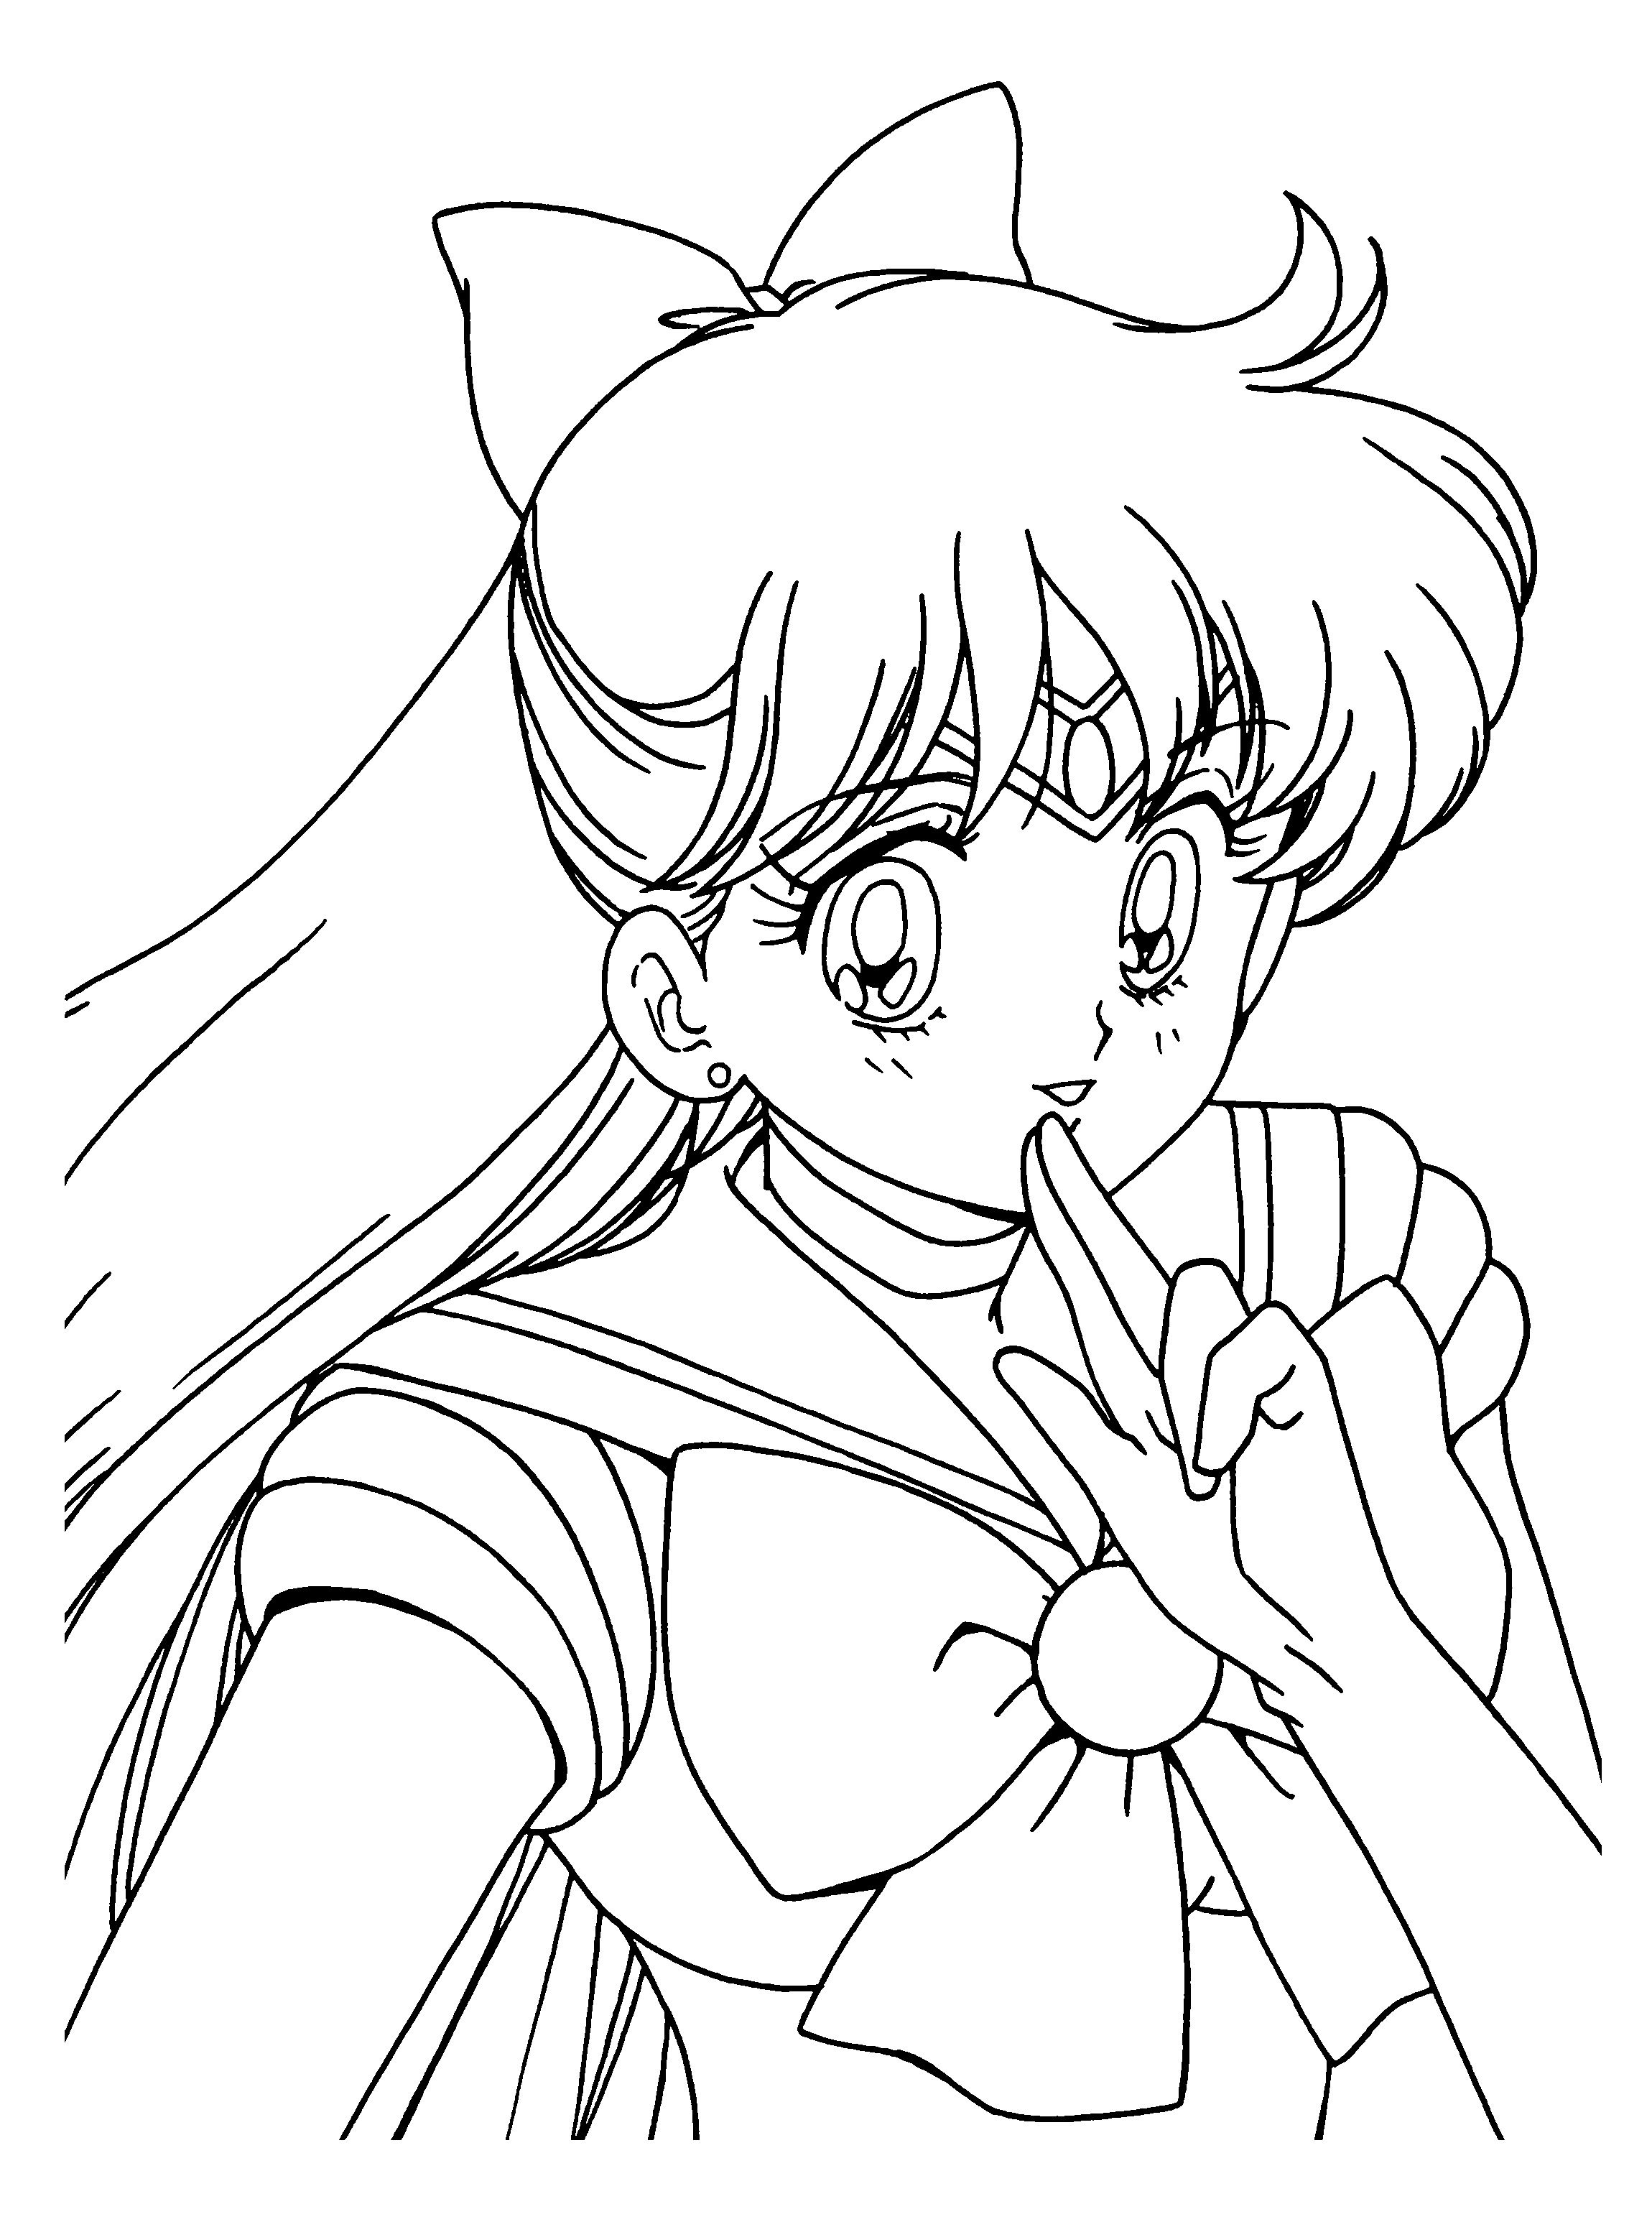 Sailor Moon And Tuxedo Mask Coloring Pages - Pictnu.co | Pictnu.co ...